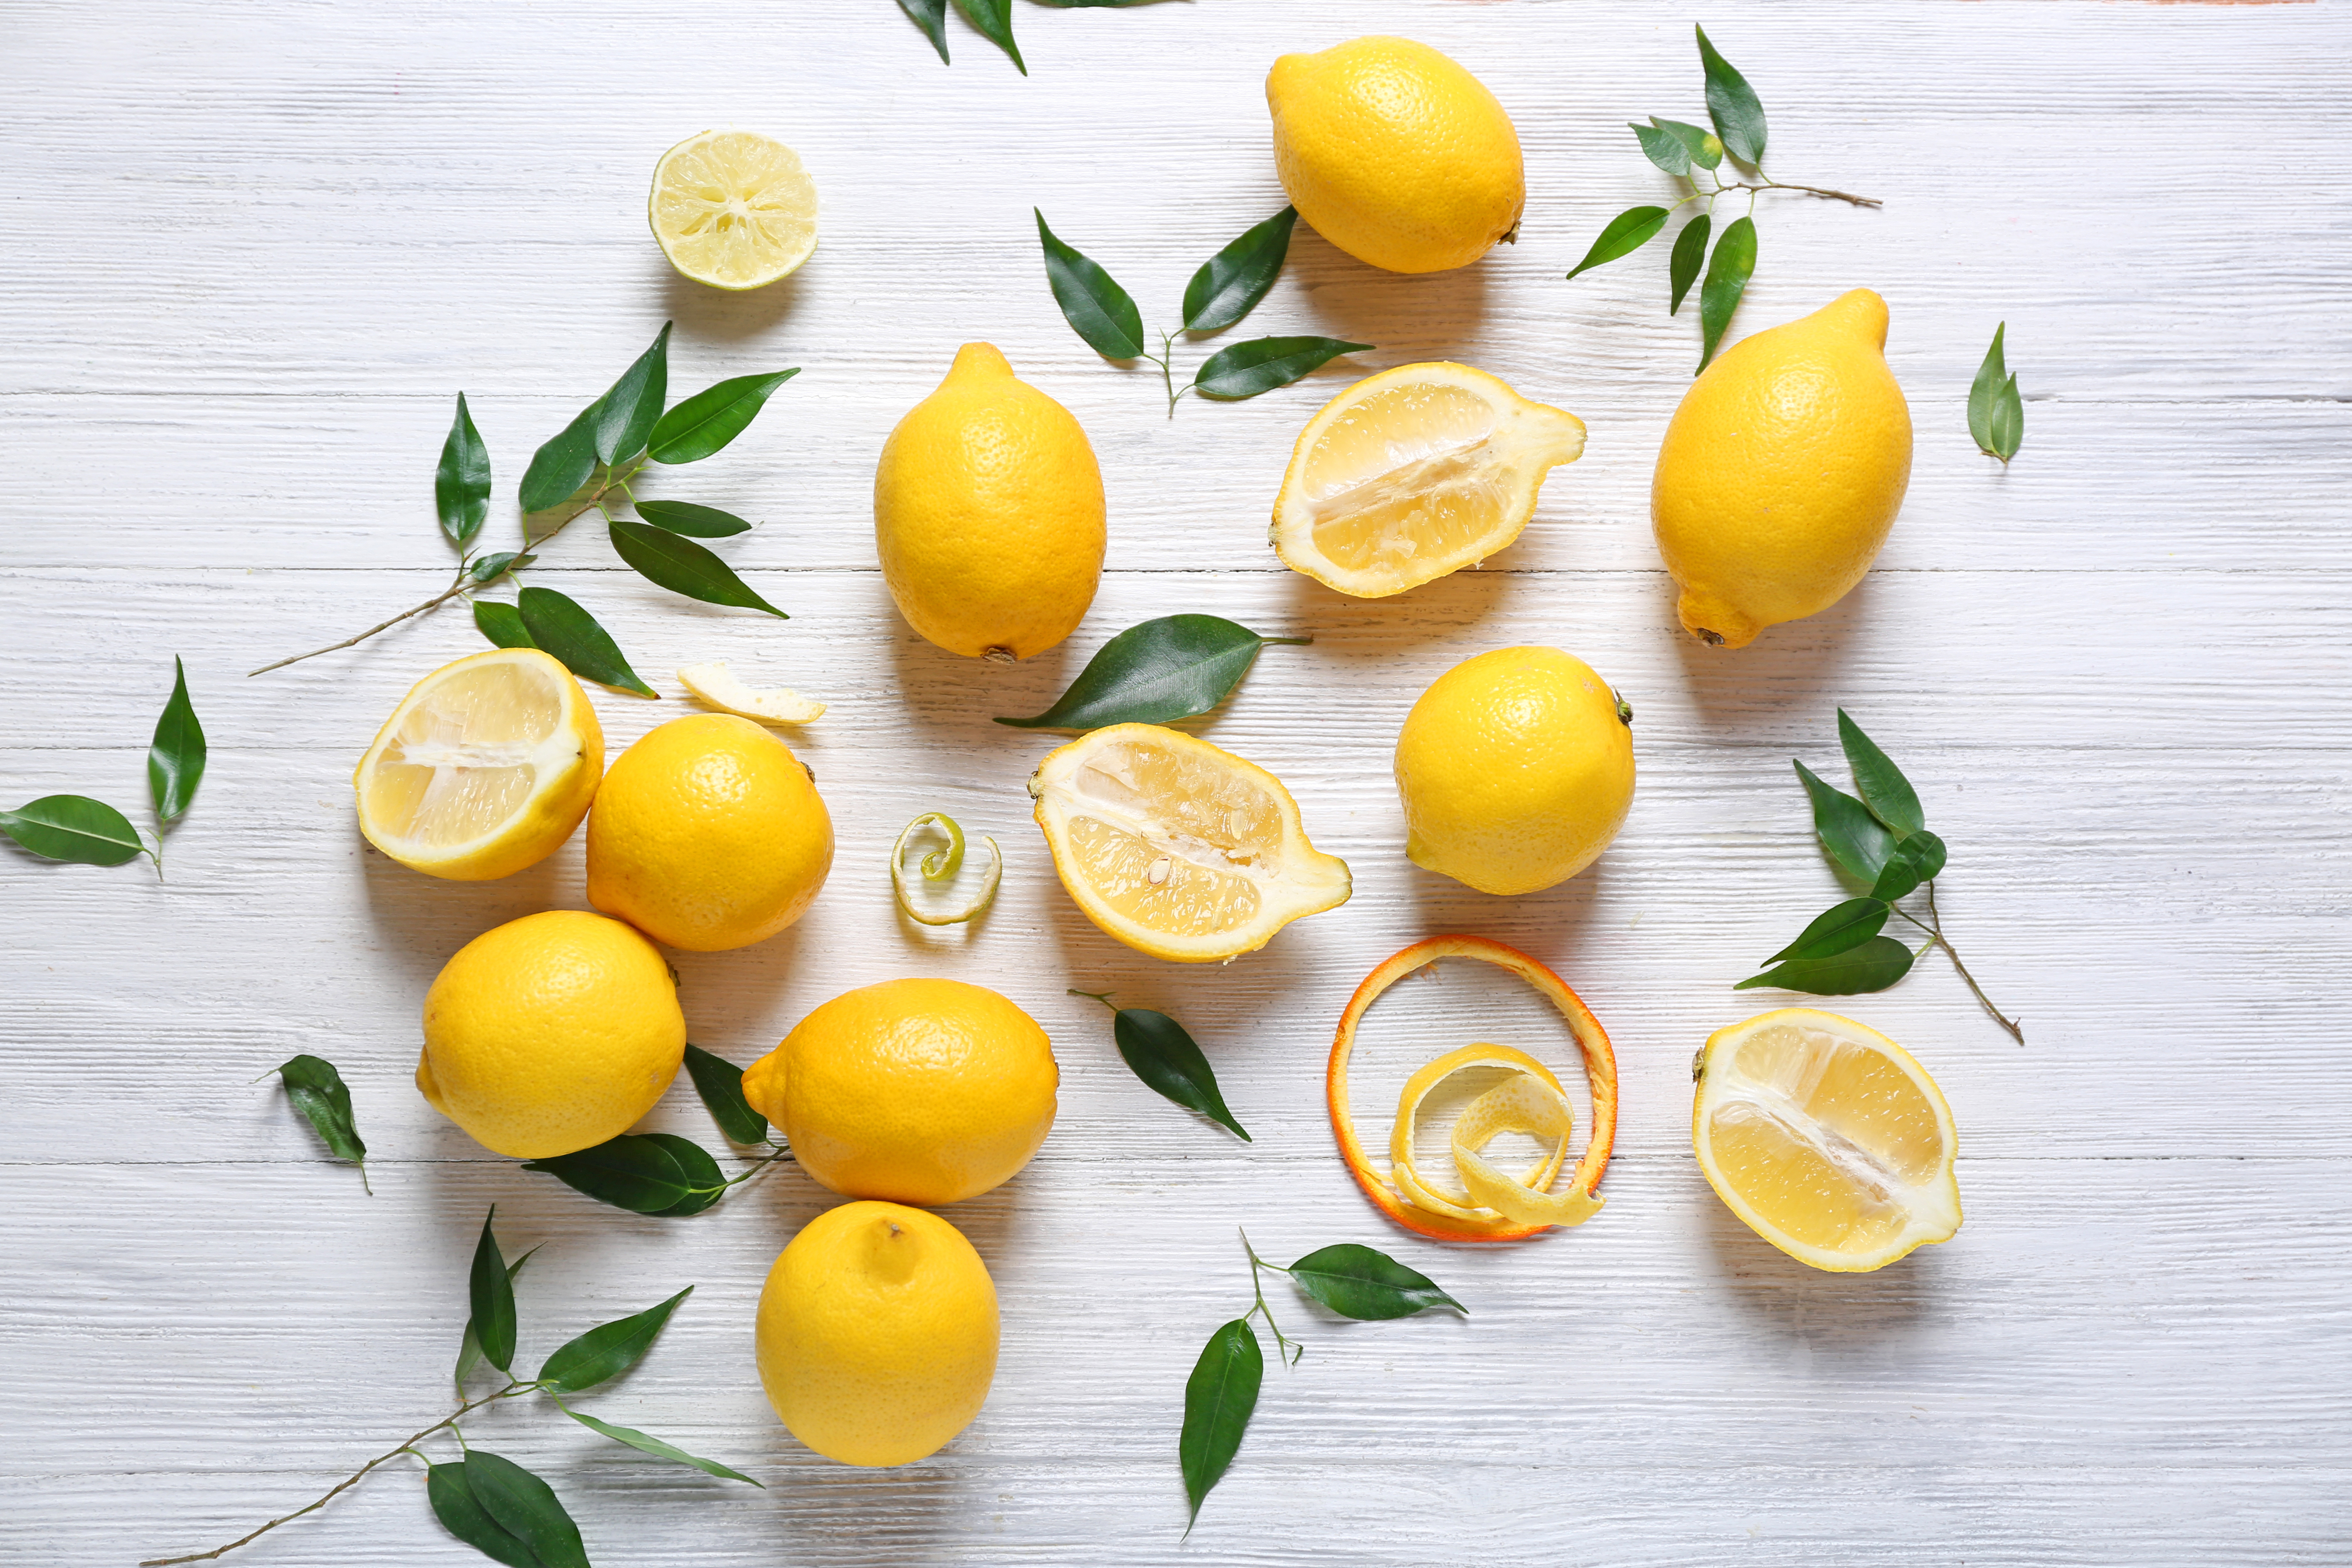 lemon_nature